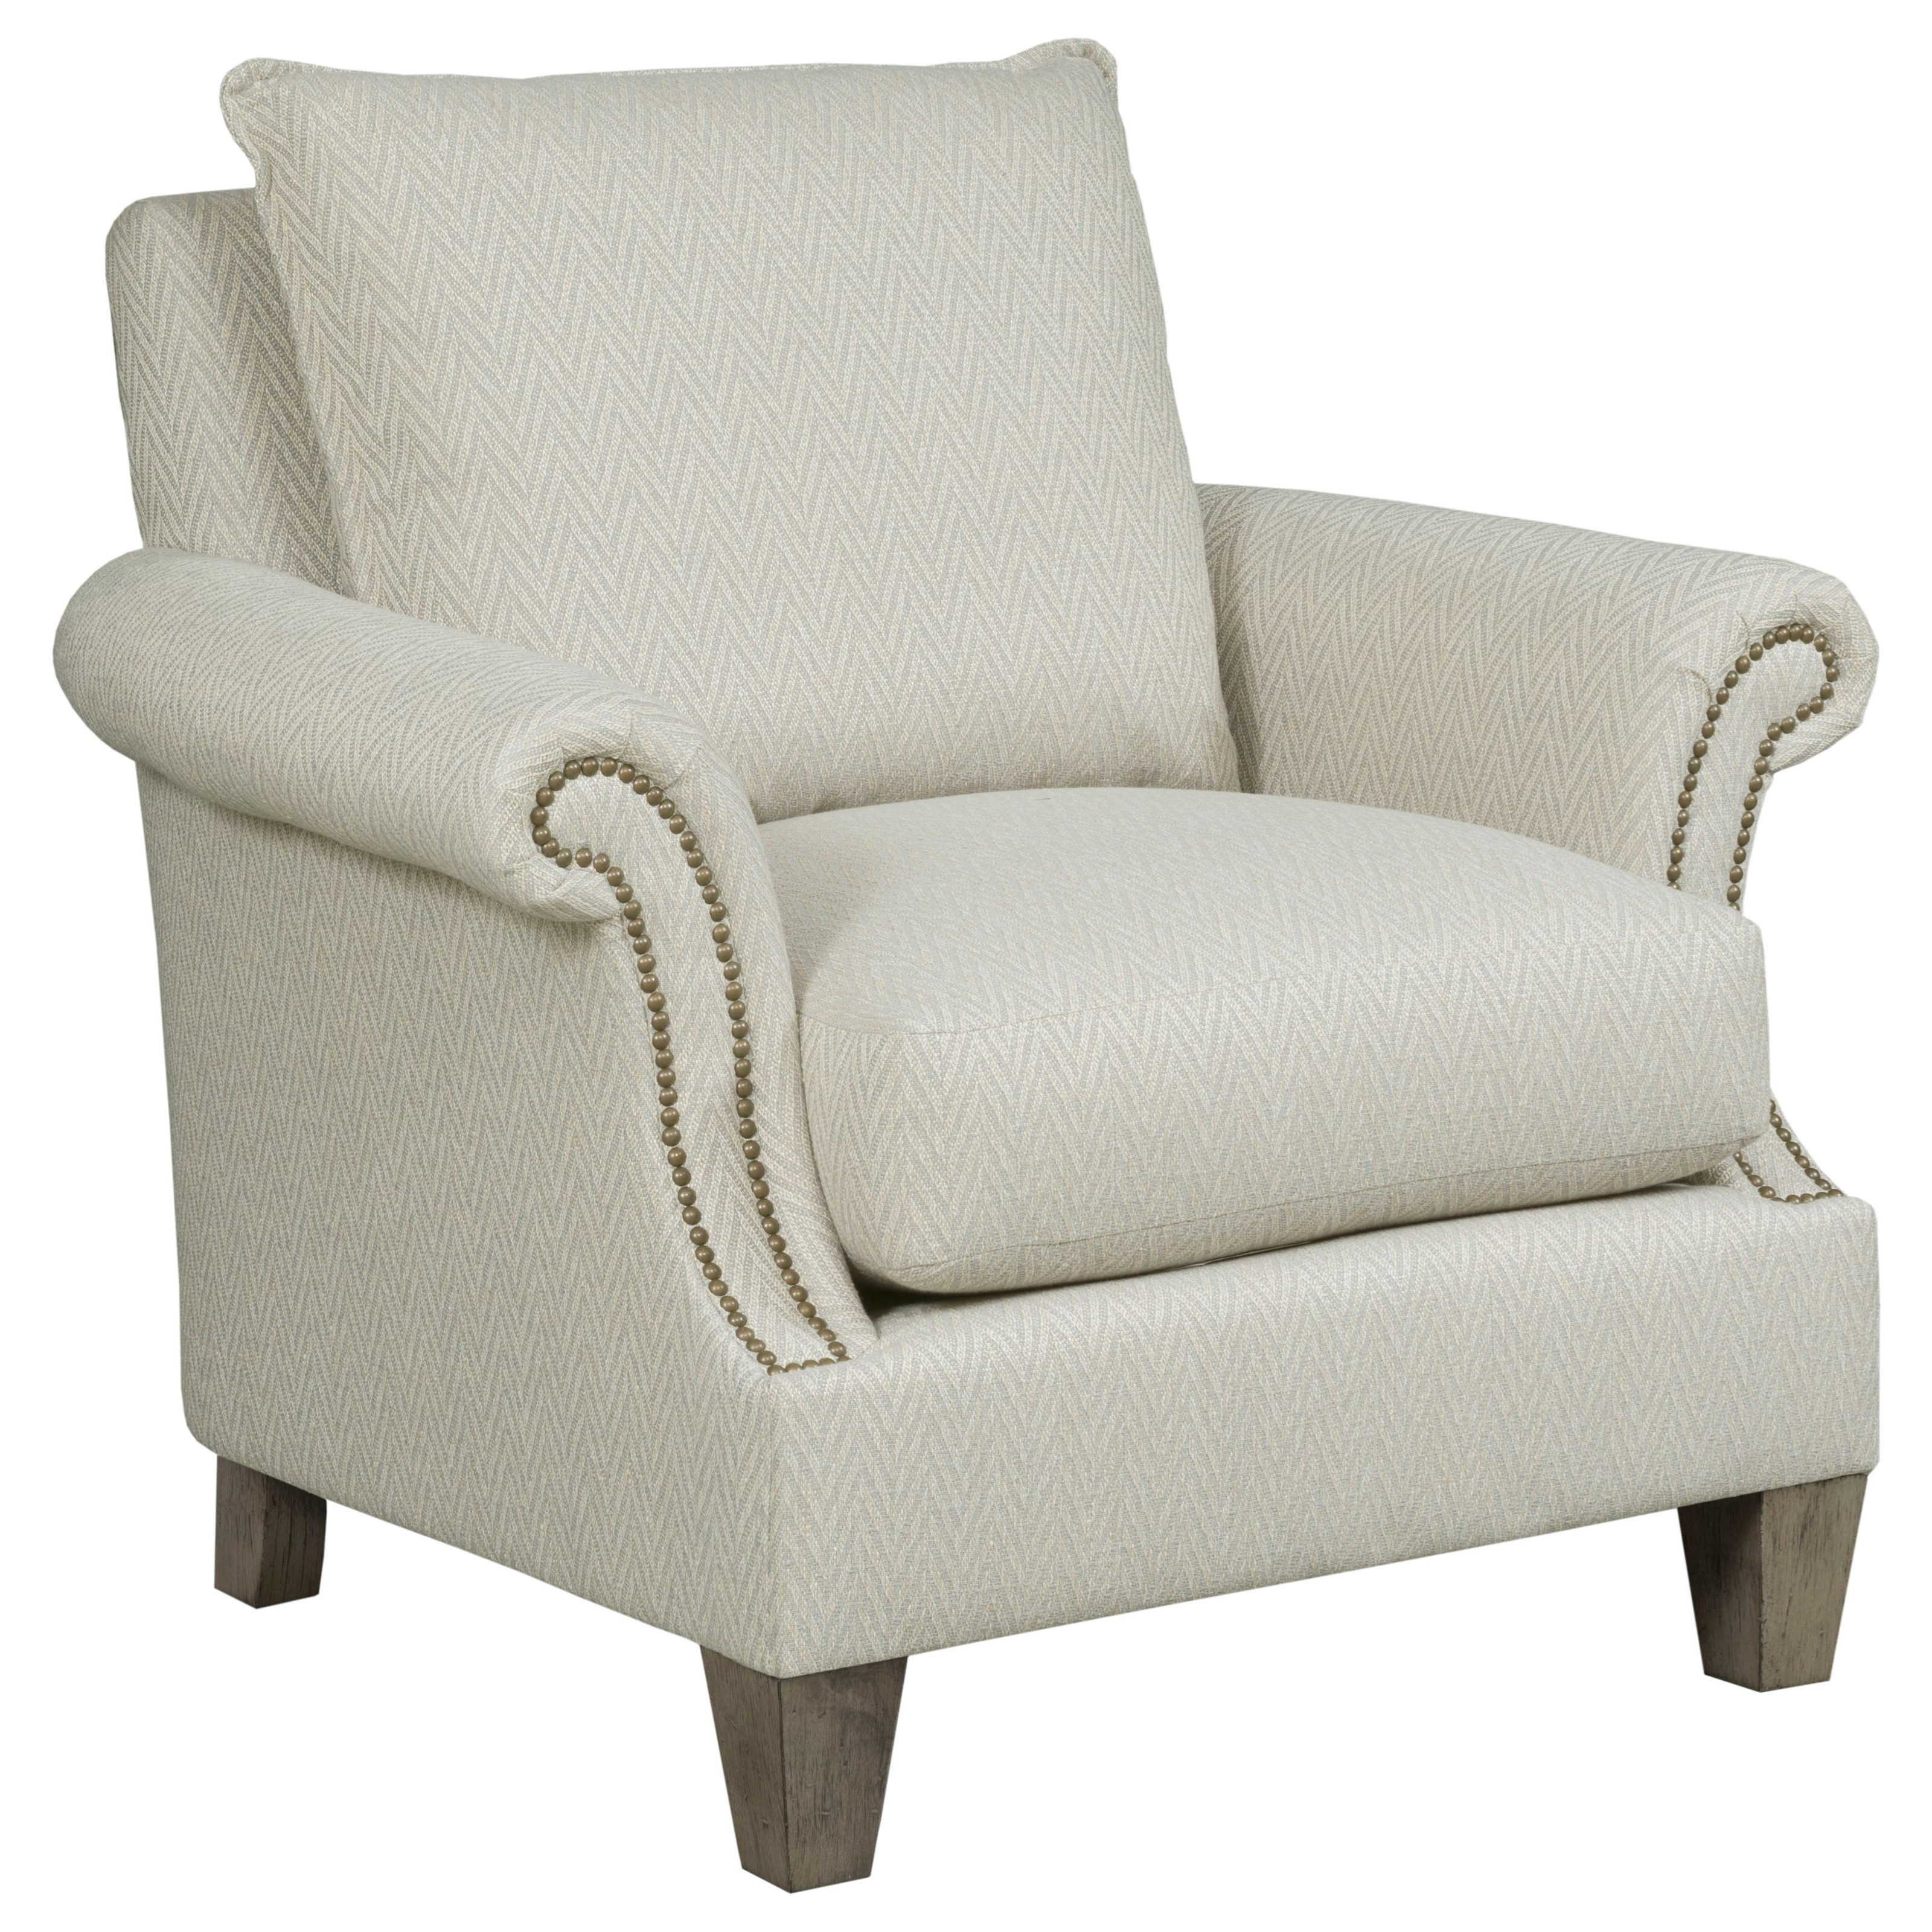 Greyson Upholstered Chair by Kincaid Furniture at Johnny Janosik